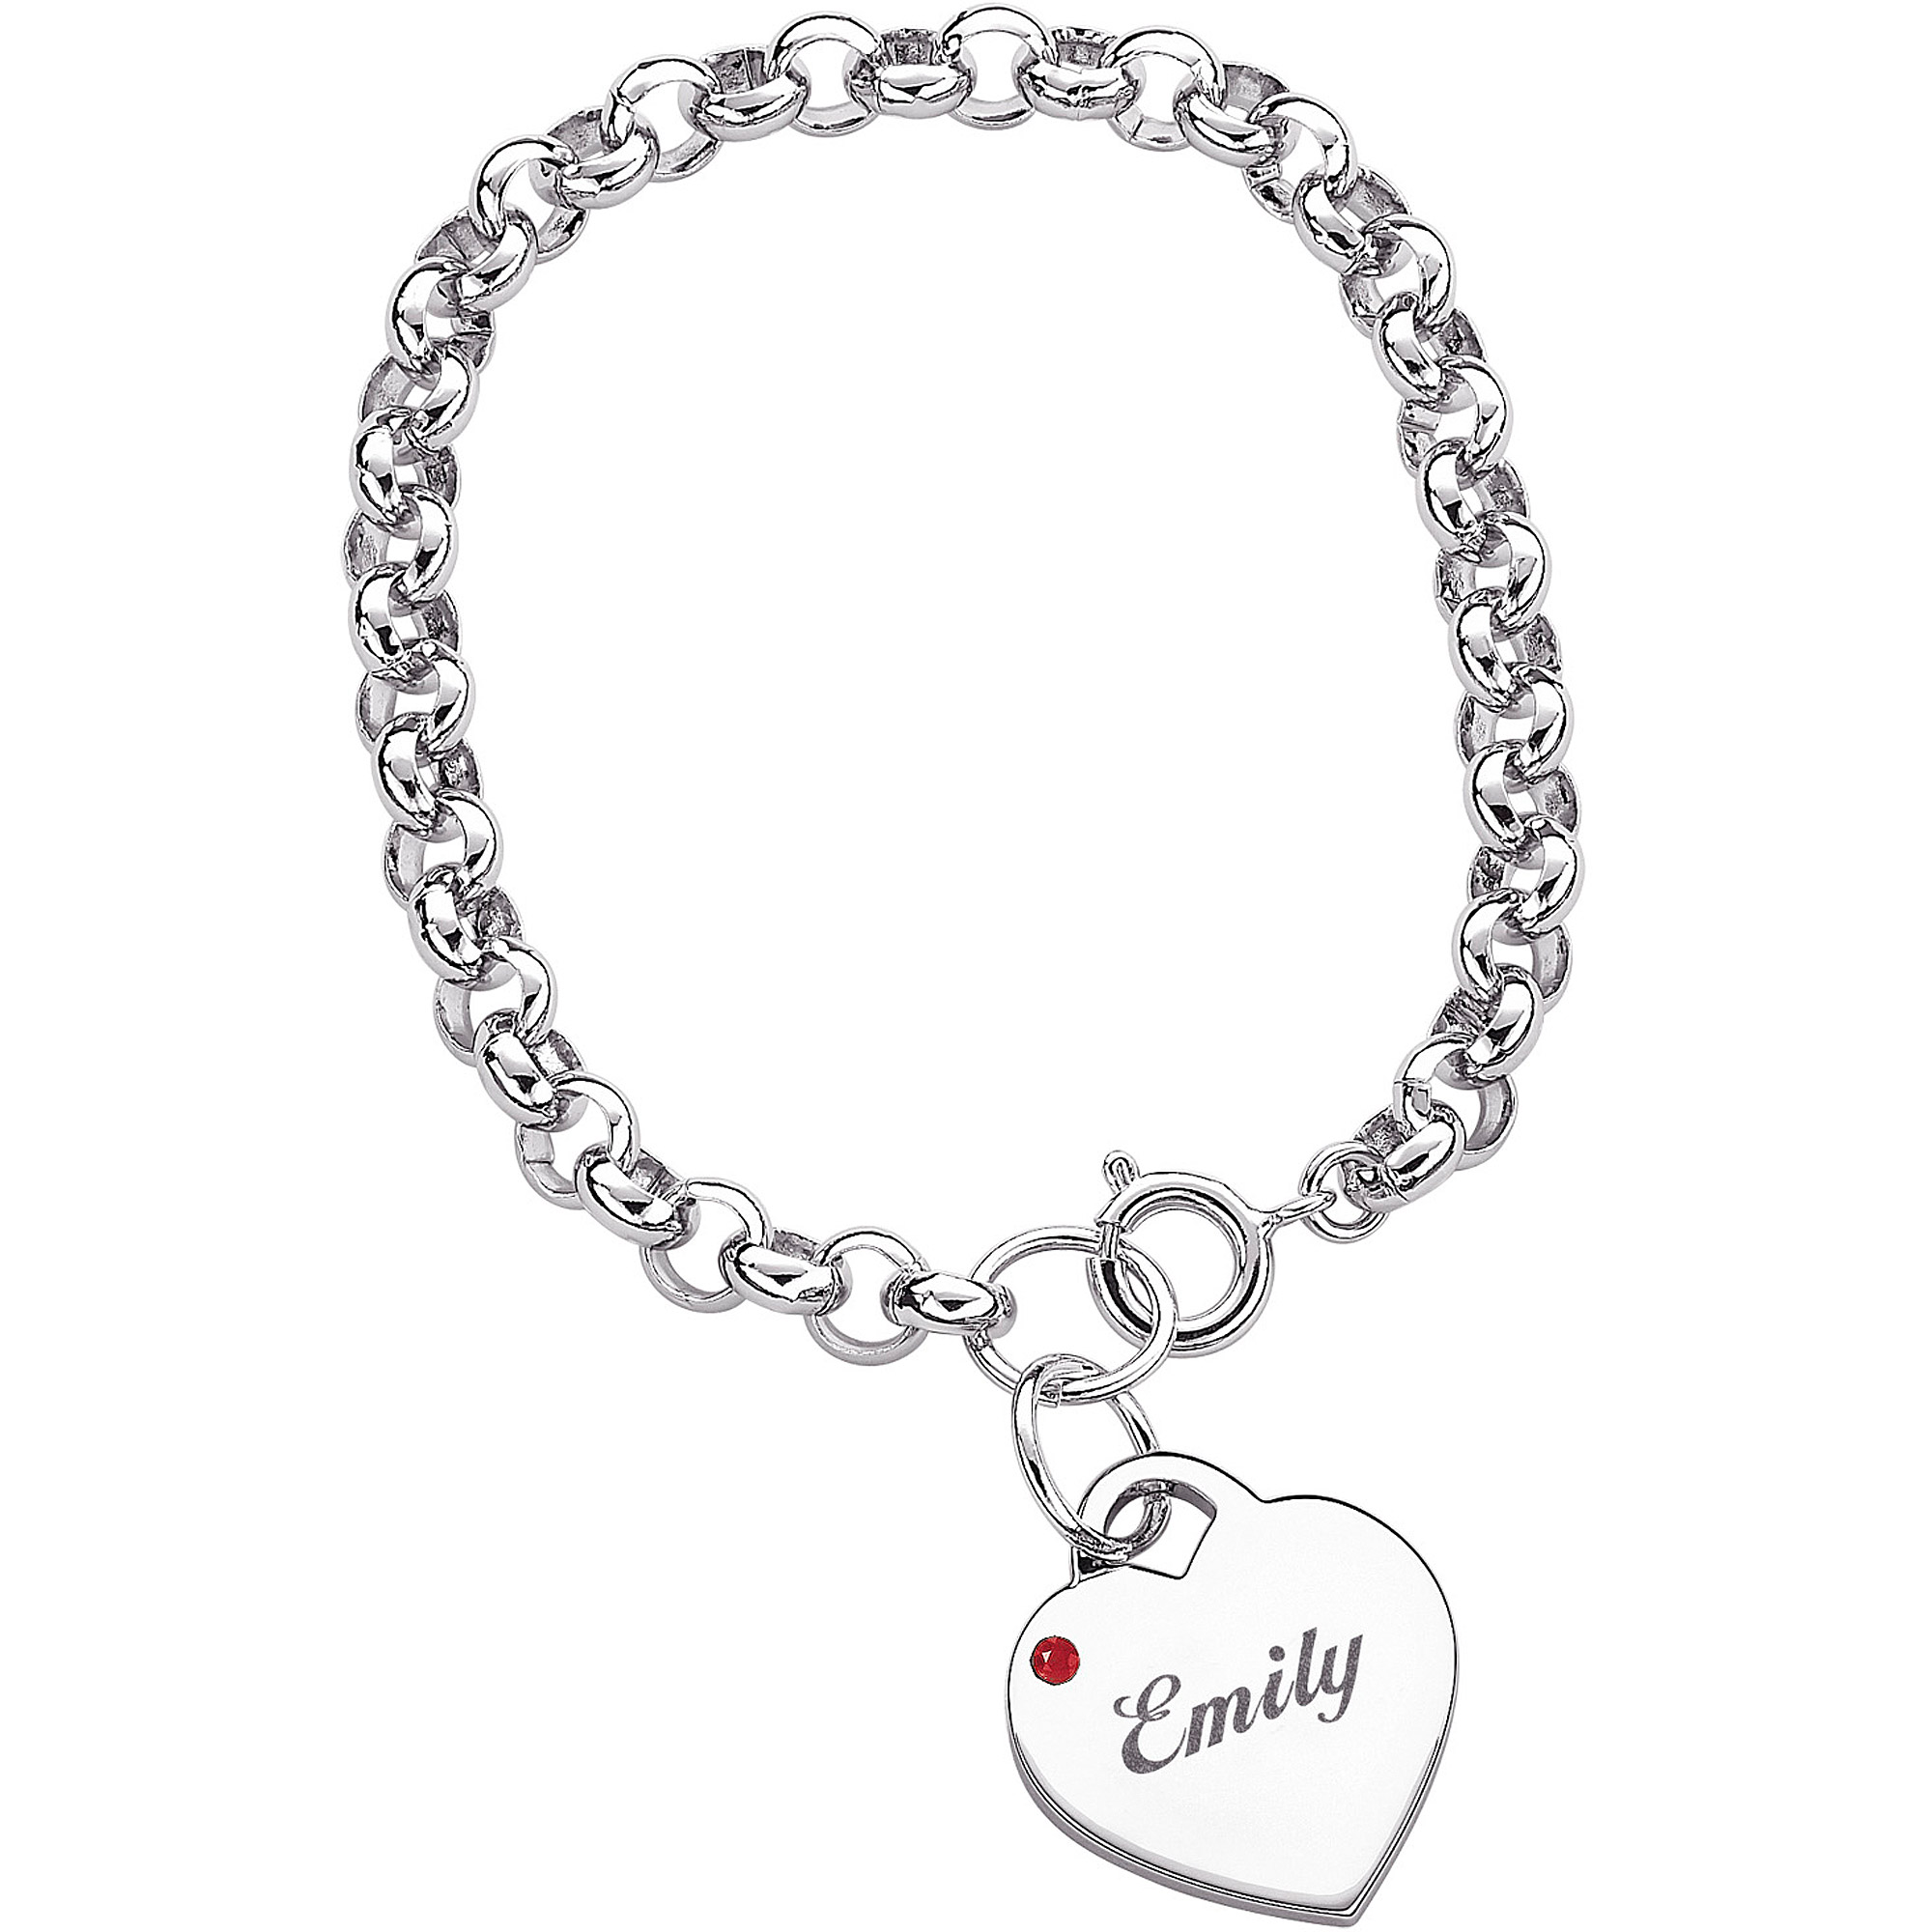 Schön Personalized Name U0026 Birthstone Heart Charm Bracelet